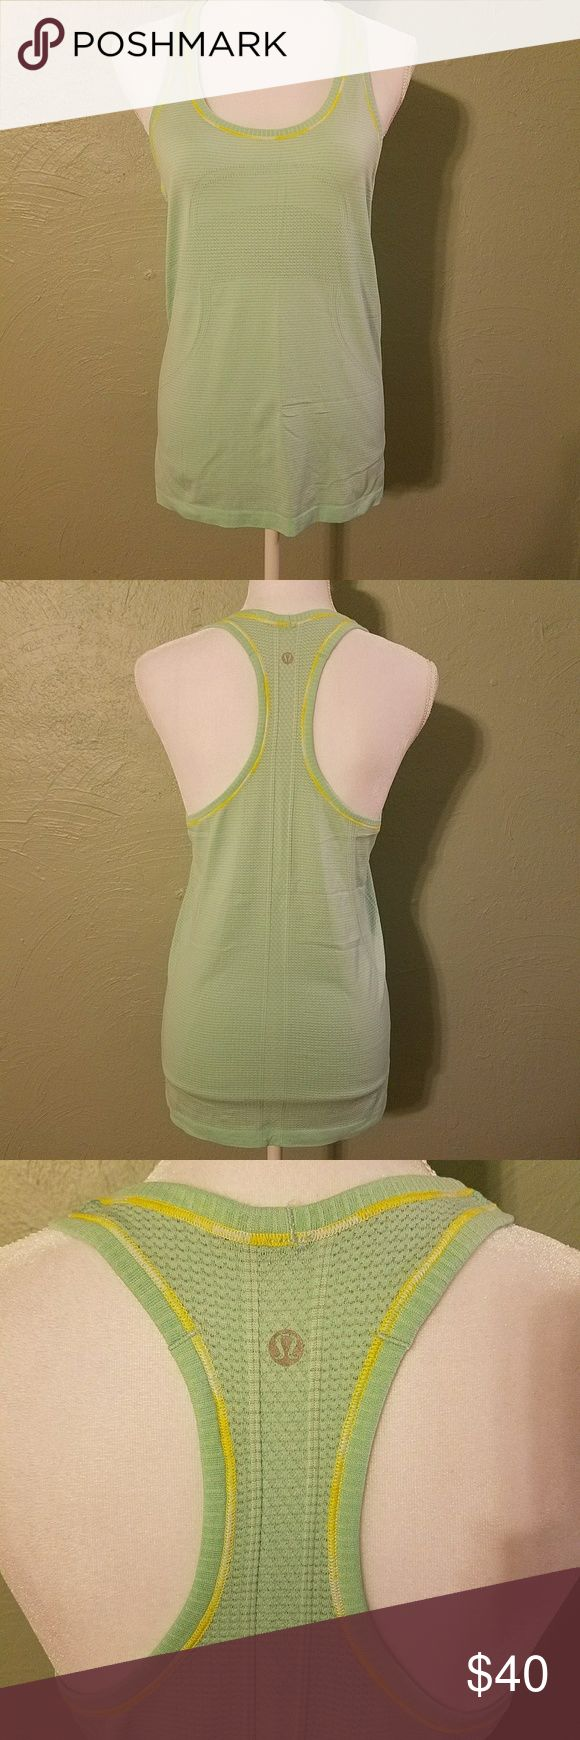 Lululemon Athletica Tank Top This is a mint green Lululemon Athletica racer back tank top. It has the Lululemon logo subtly across the front of the torso of the shirt. The stitching is yellow. Super cute! In perfect condition. lululemon athletica Tops Tank Tops